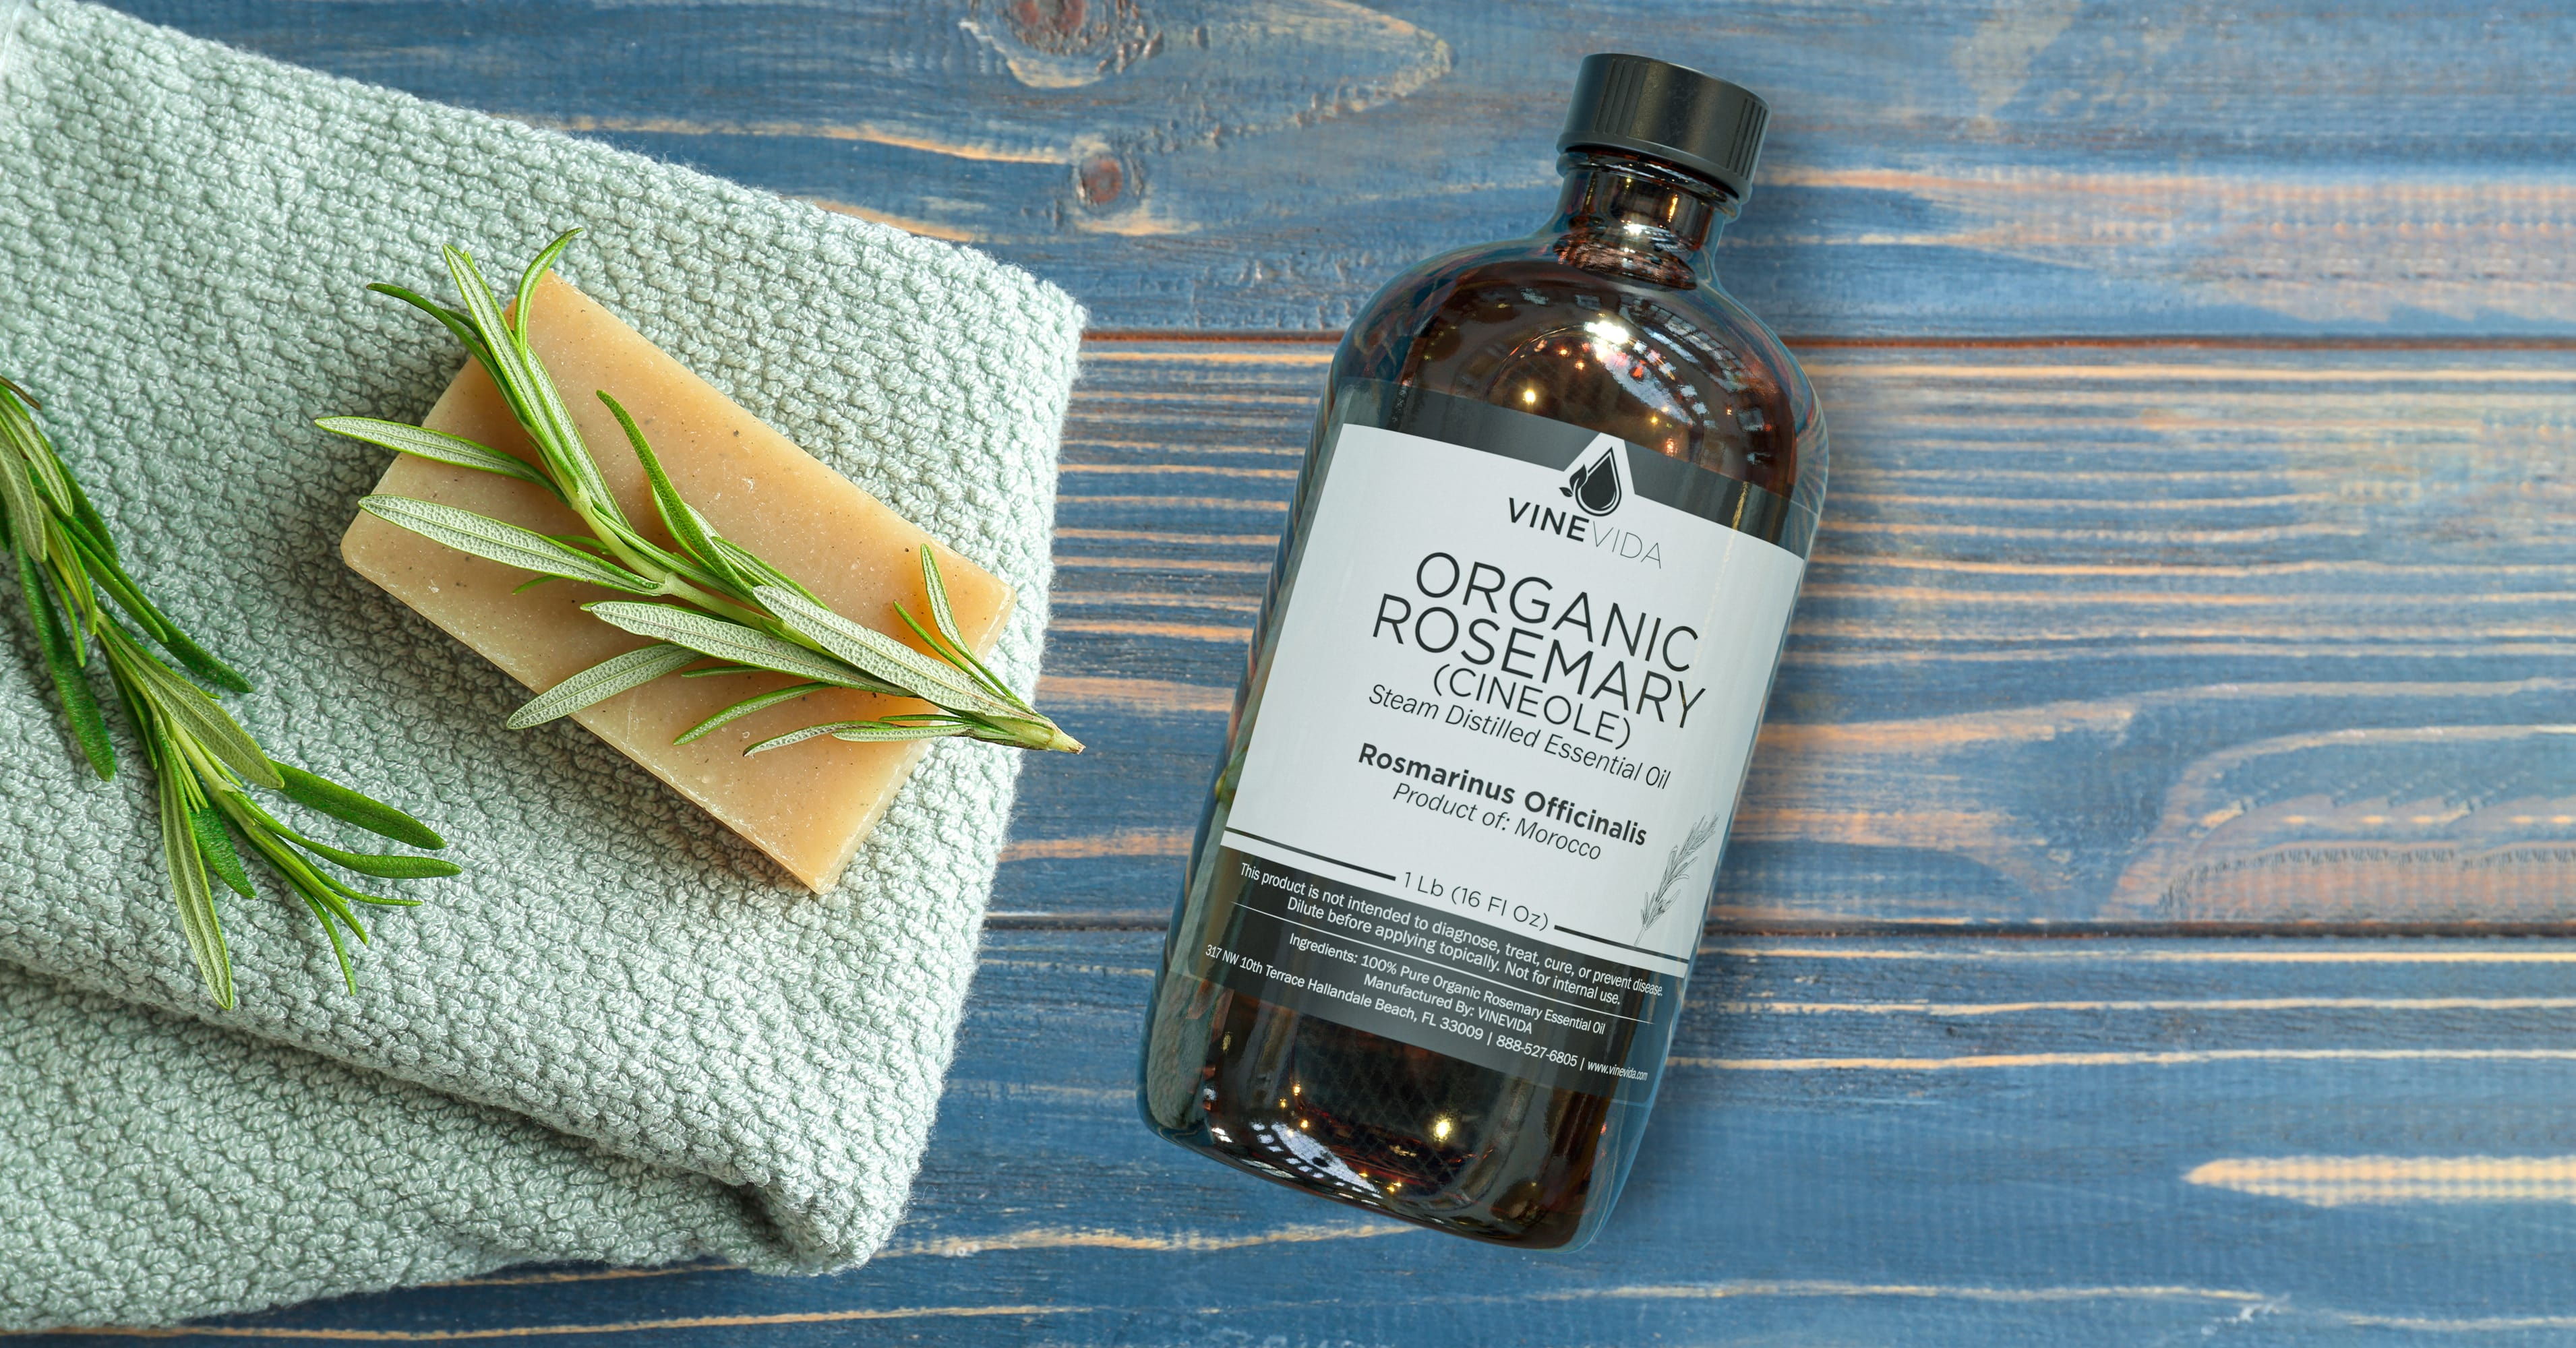 Organic Rosemary Essential Oil Soap Making